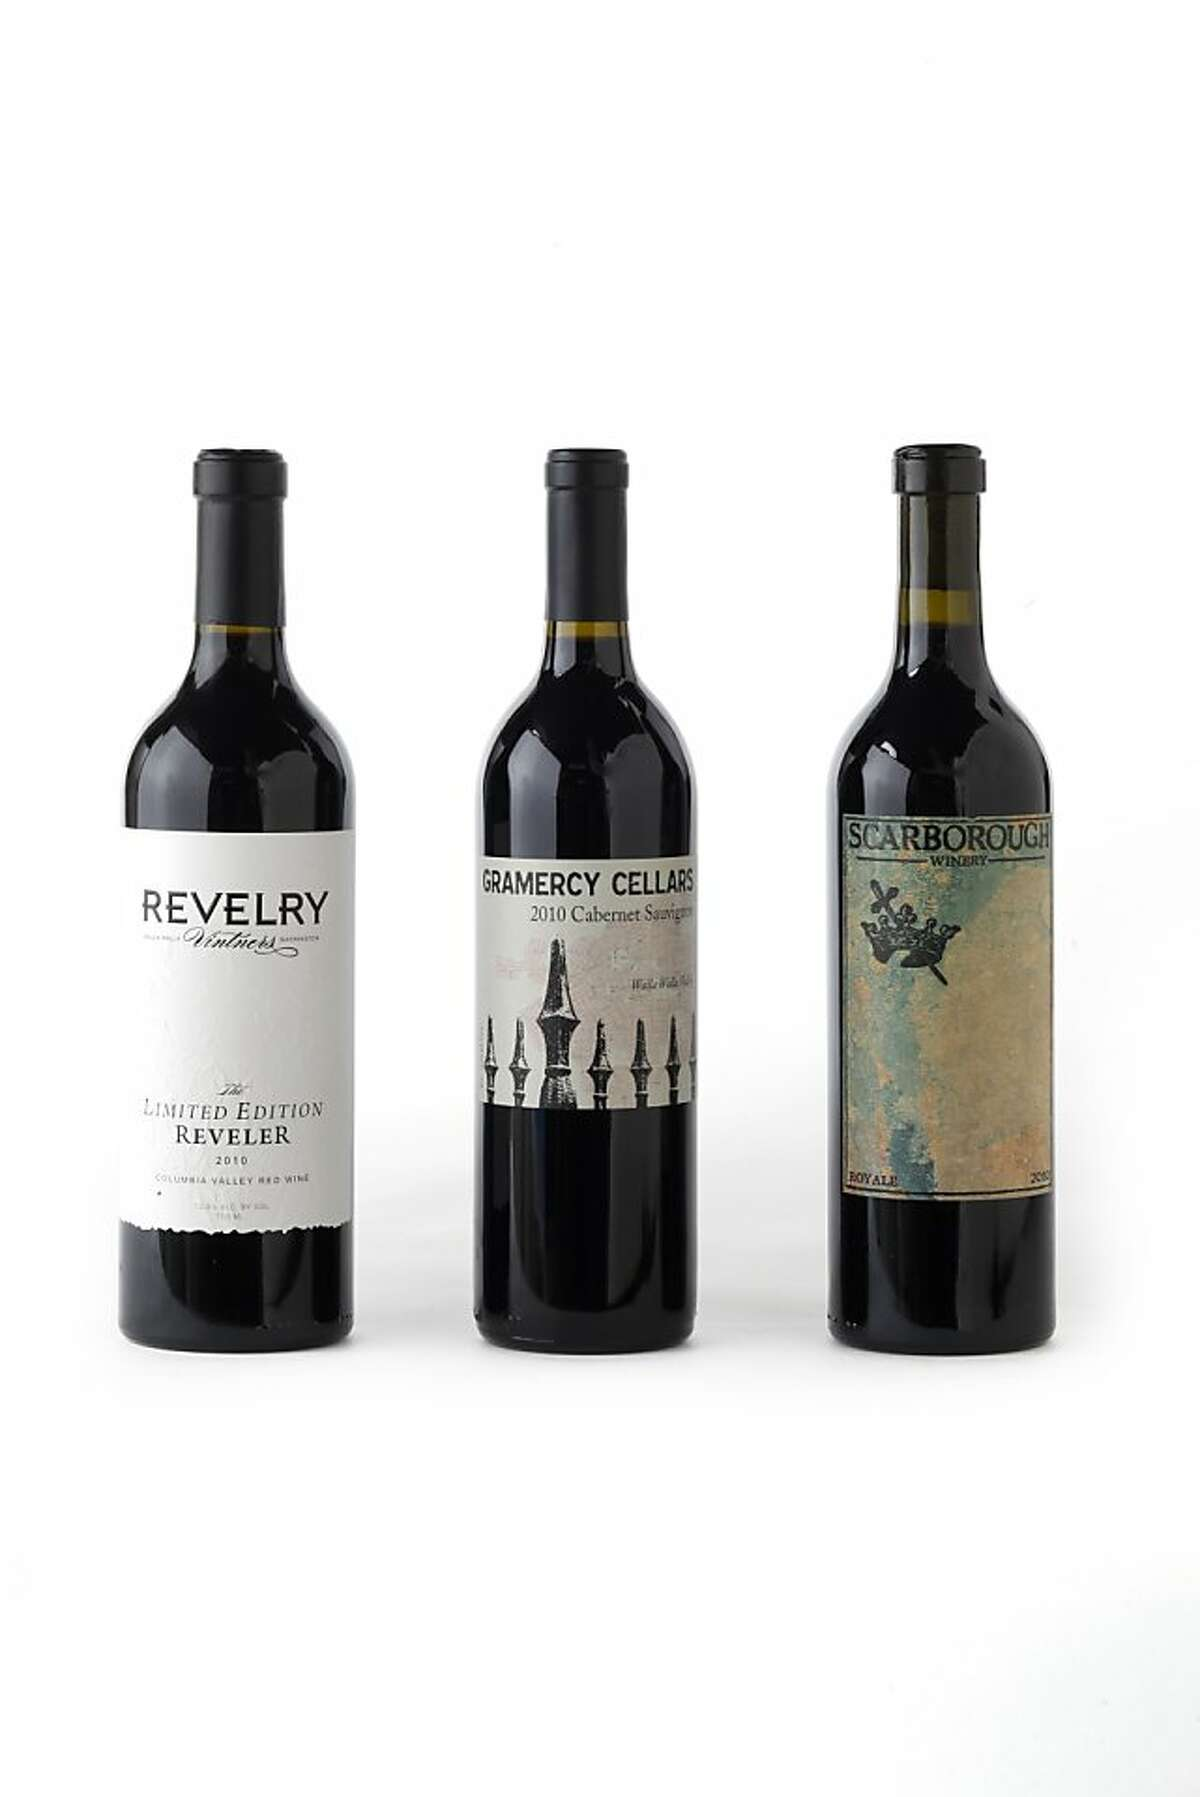 Left-right: 2010 Revelry Vintners The Limited Edition Reveler, 2010 Gramercy Cellars Cabernet Sauvignon, 2010 Scarborough Royale as seen in San Francisco, California, on July 17, 2013.